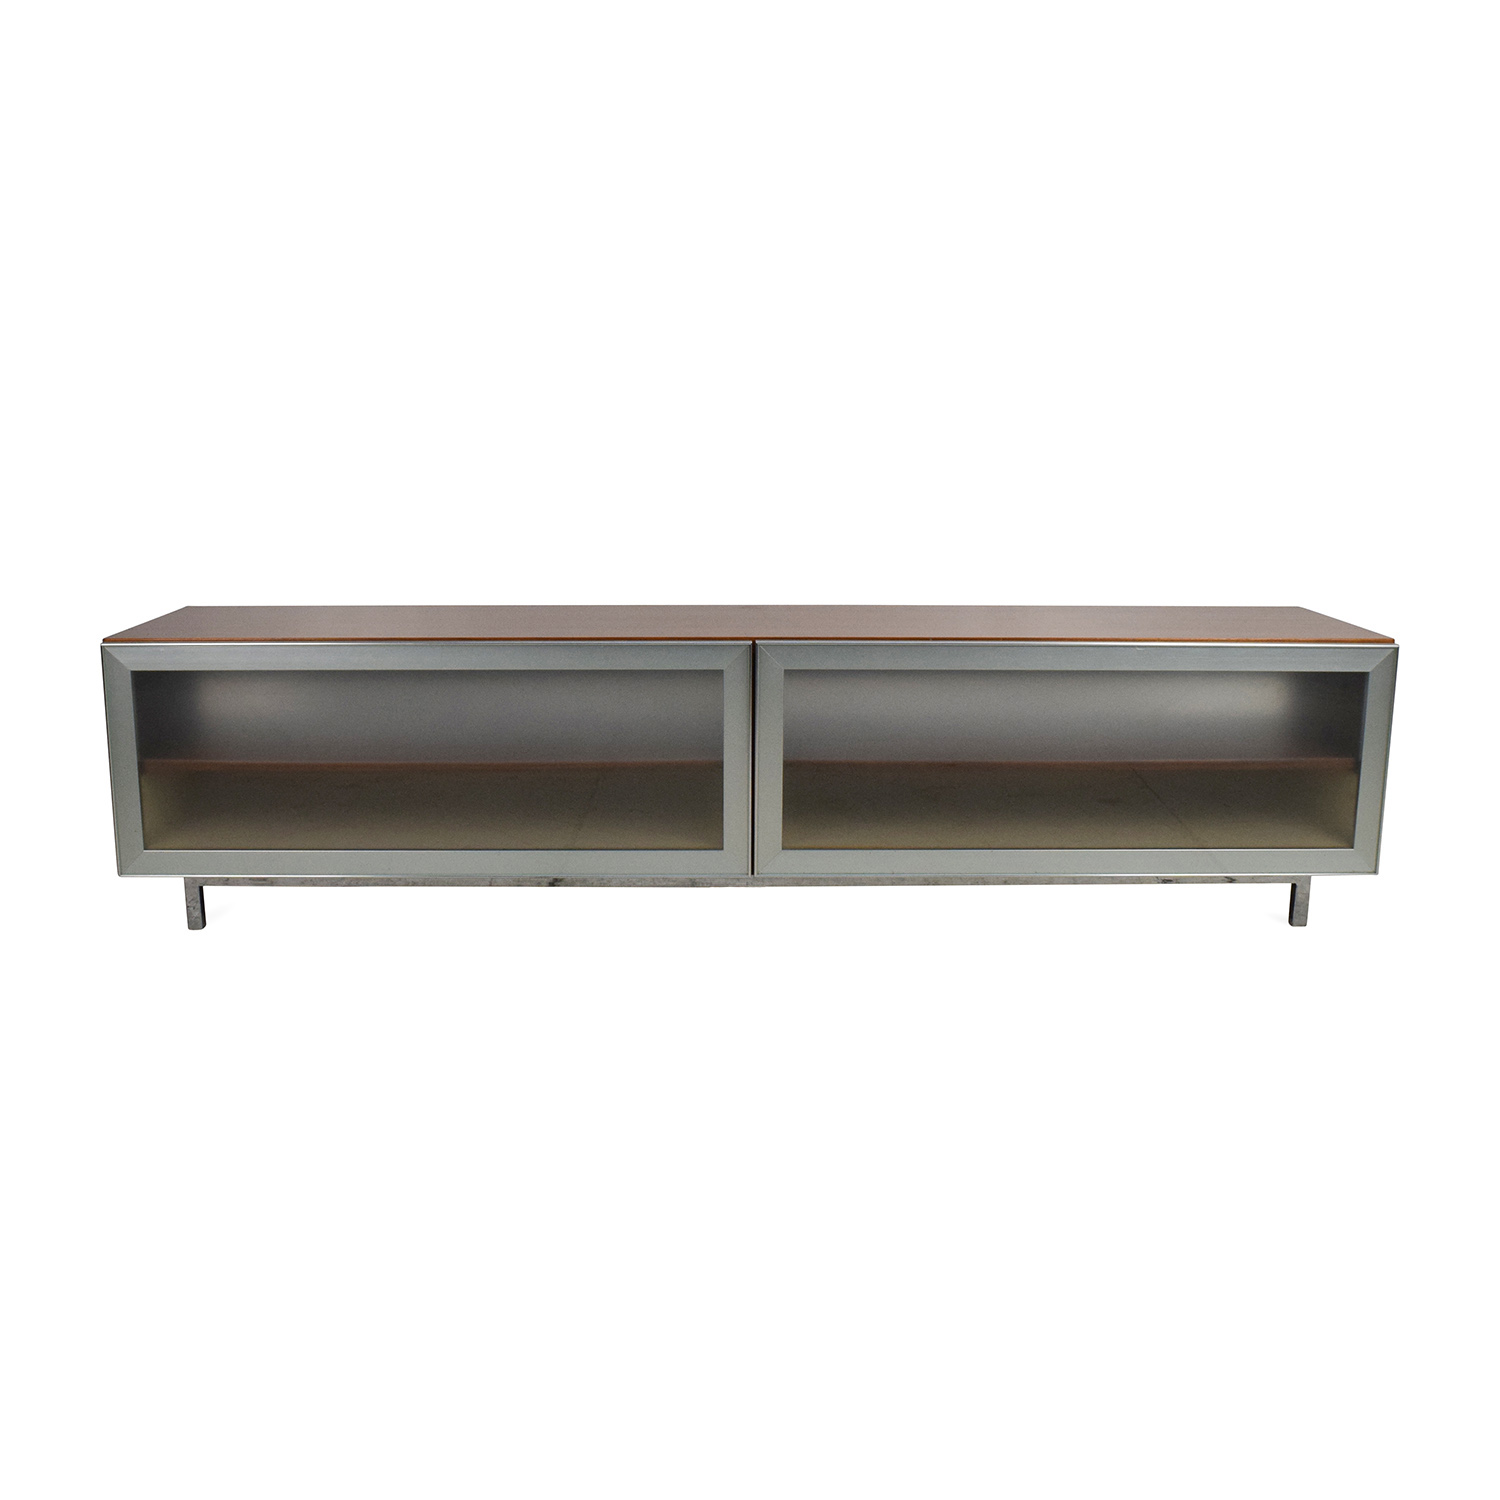 79% off - boconcept boconcept modern media unit / storage